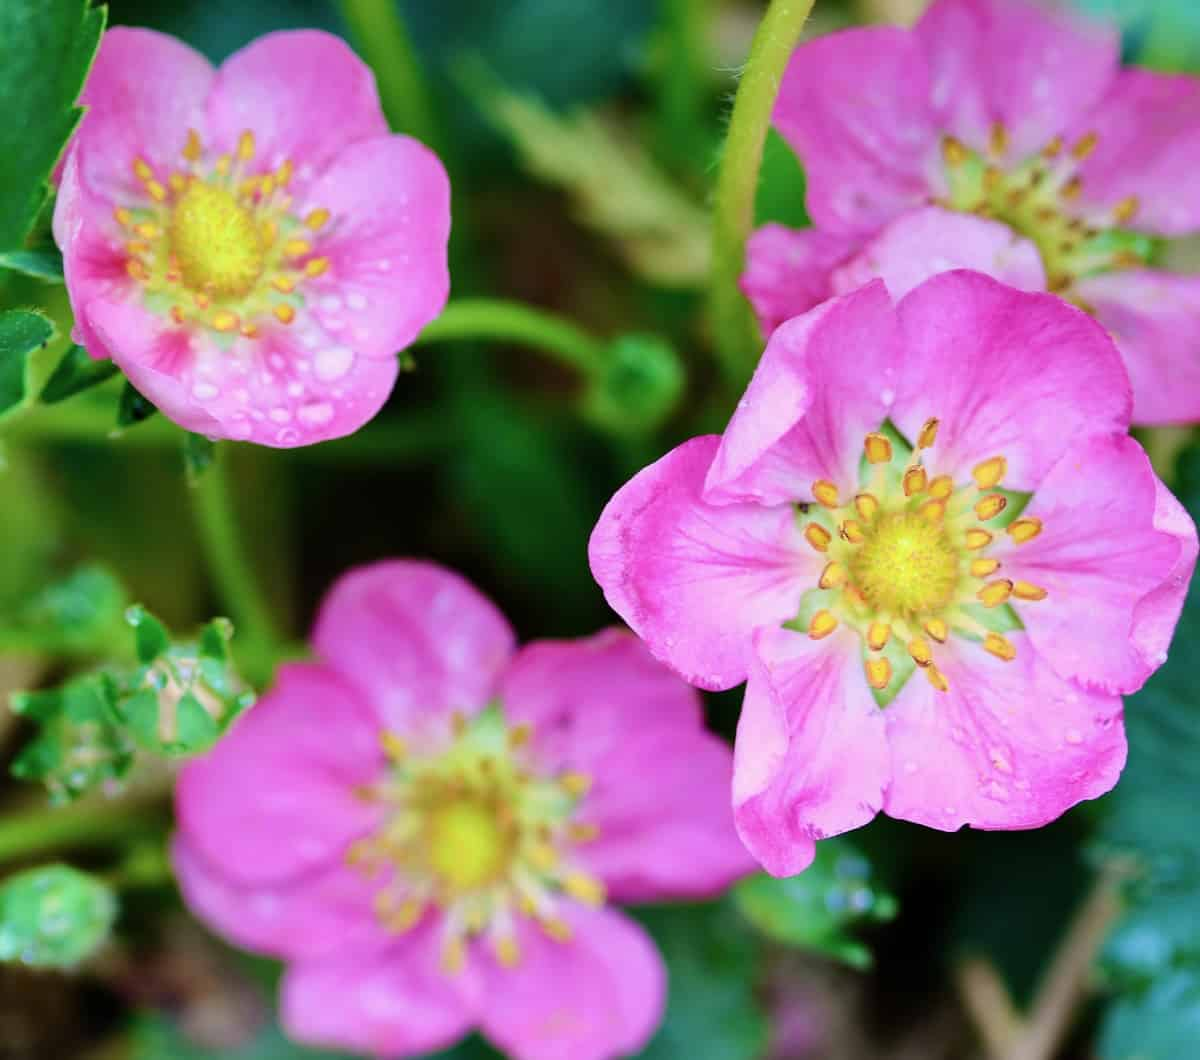 pink strawberry flowers